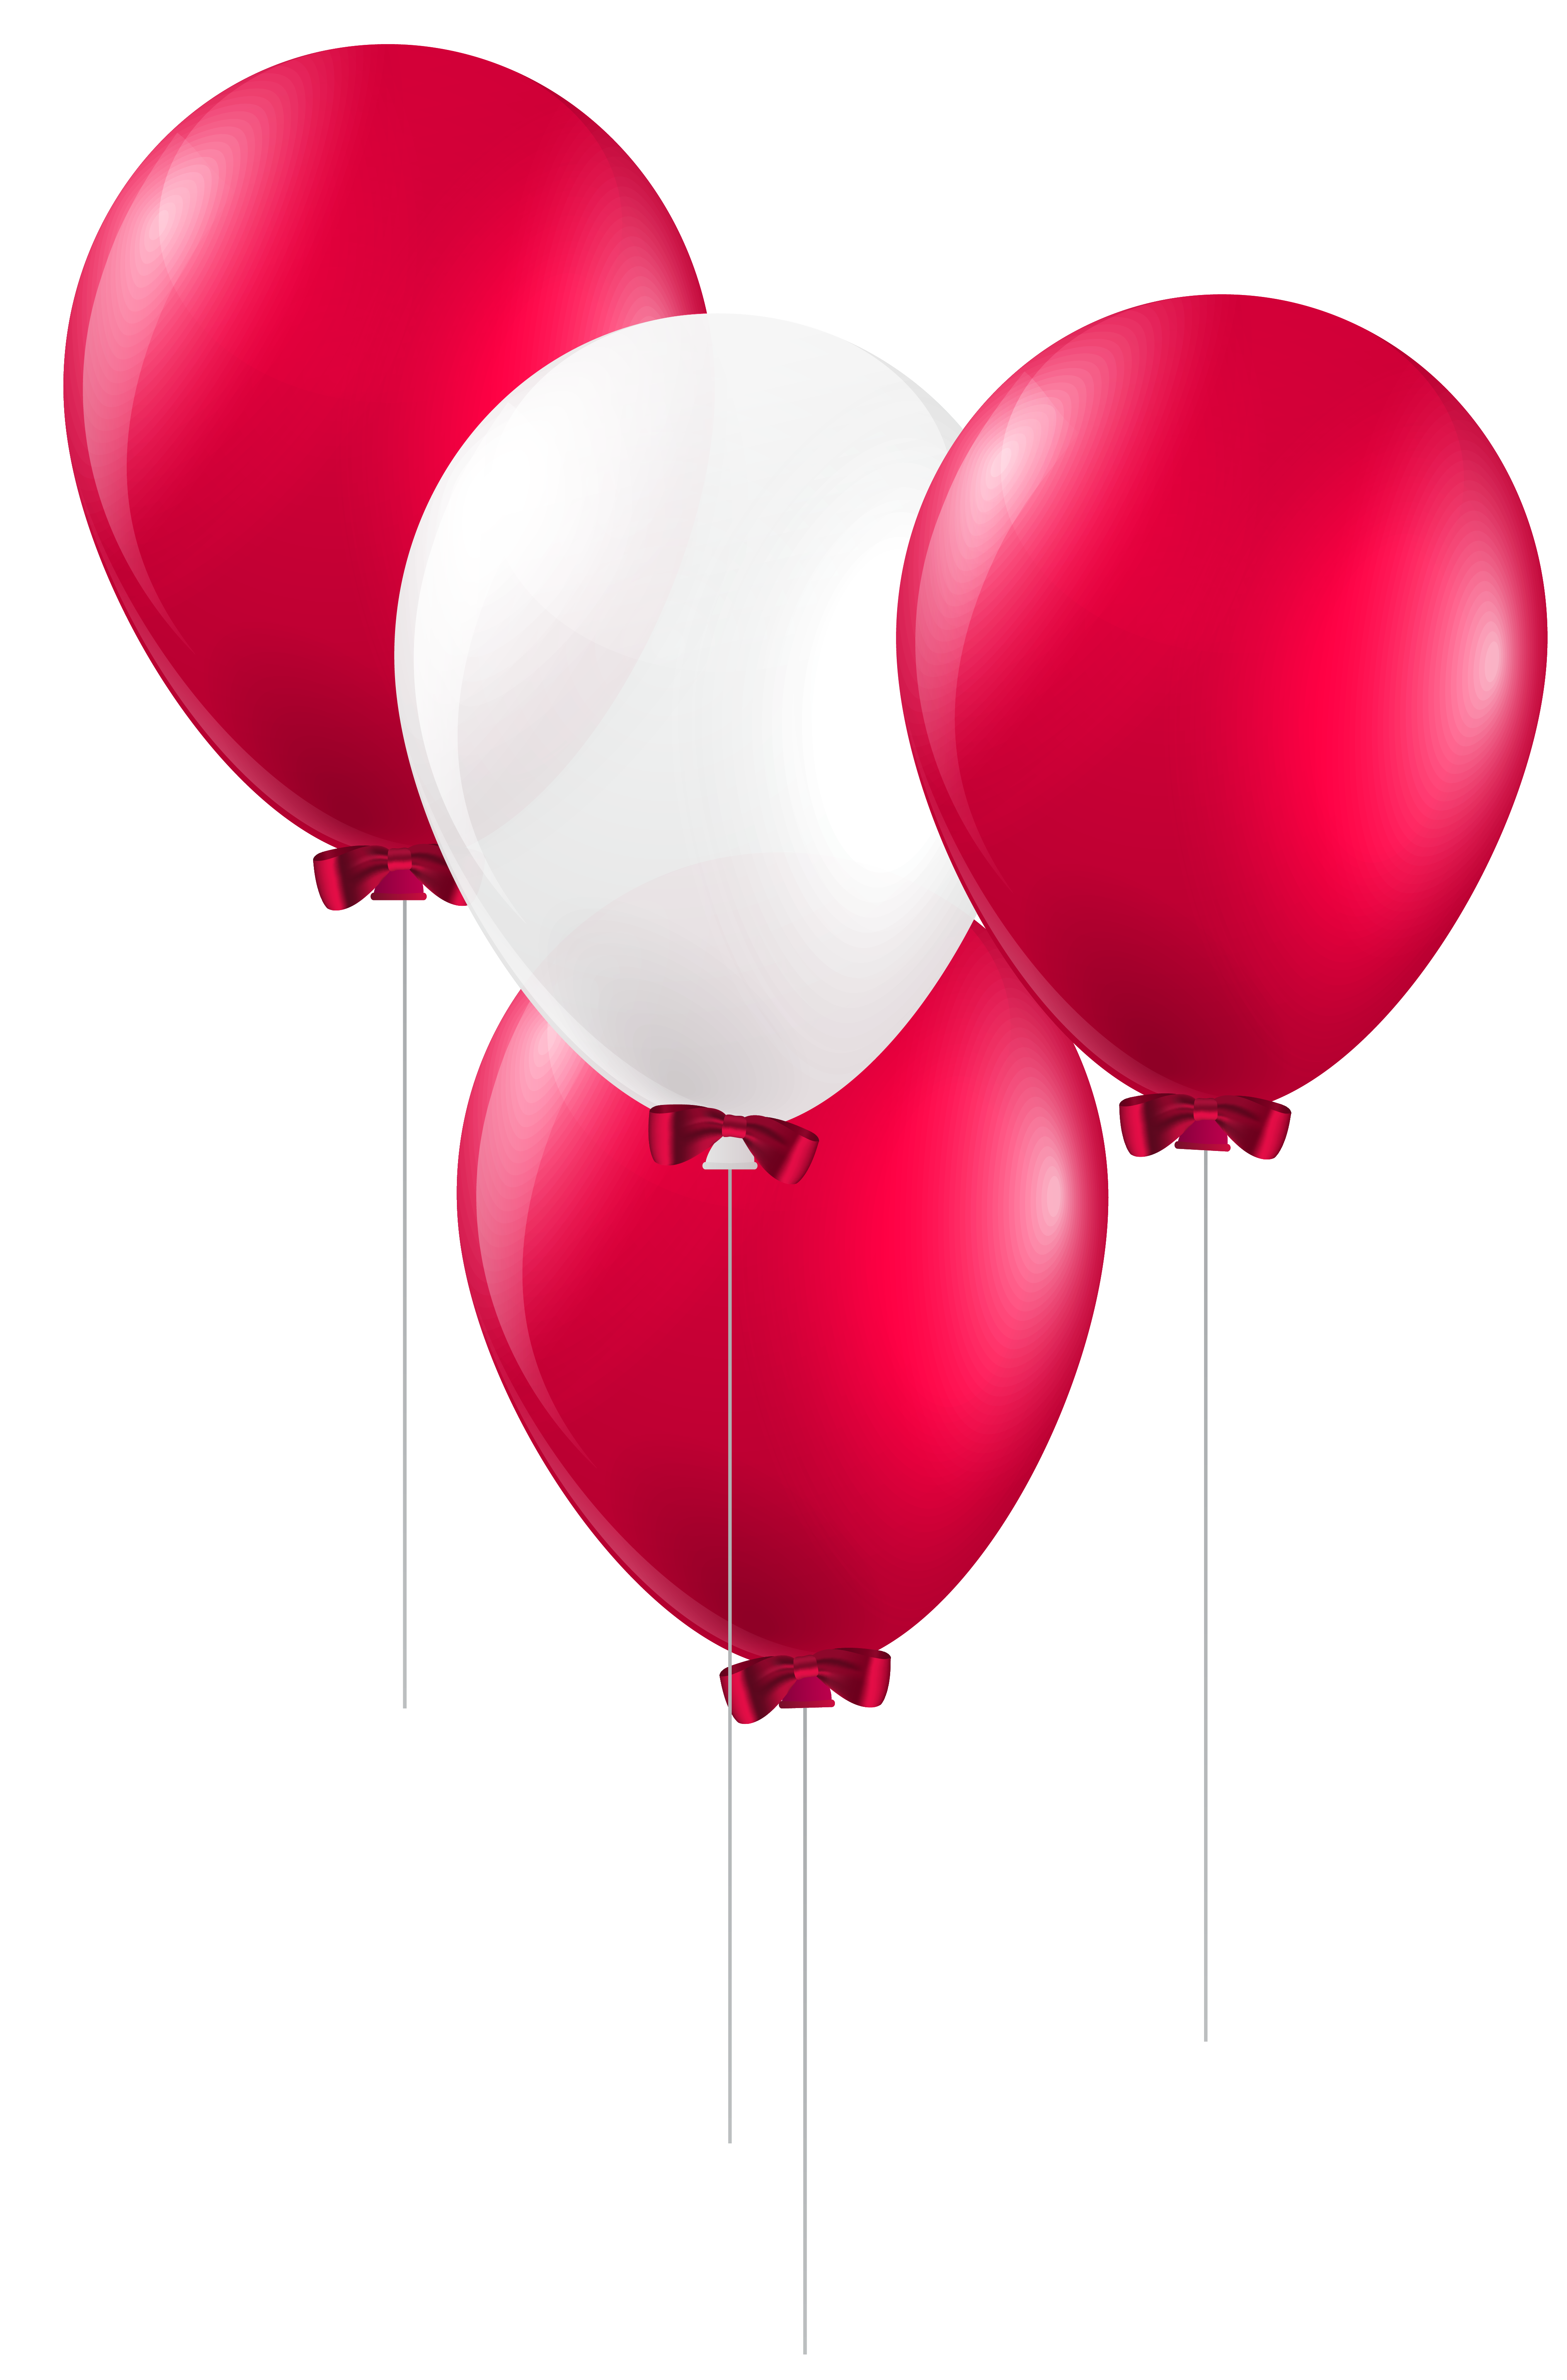 White balloon png. Red and balloons clip